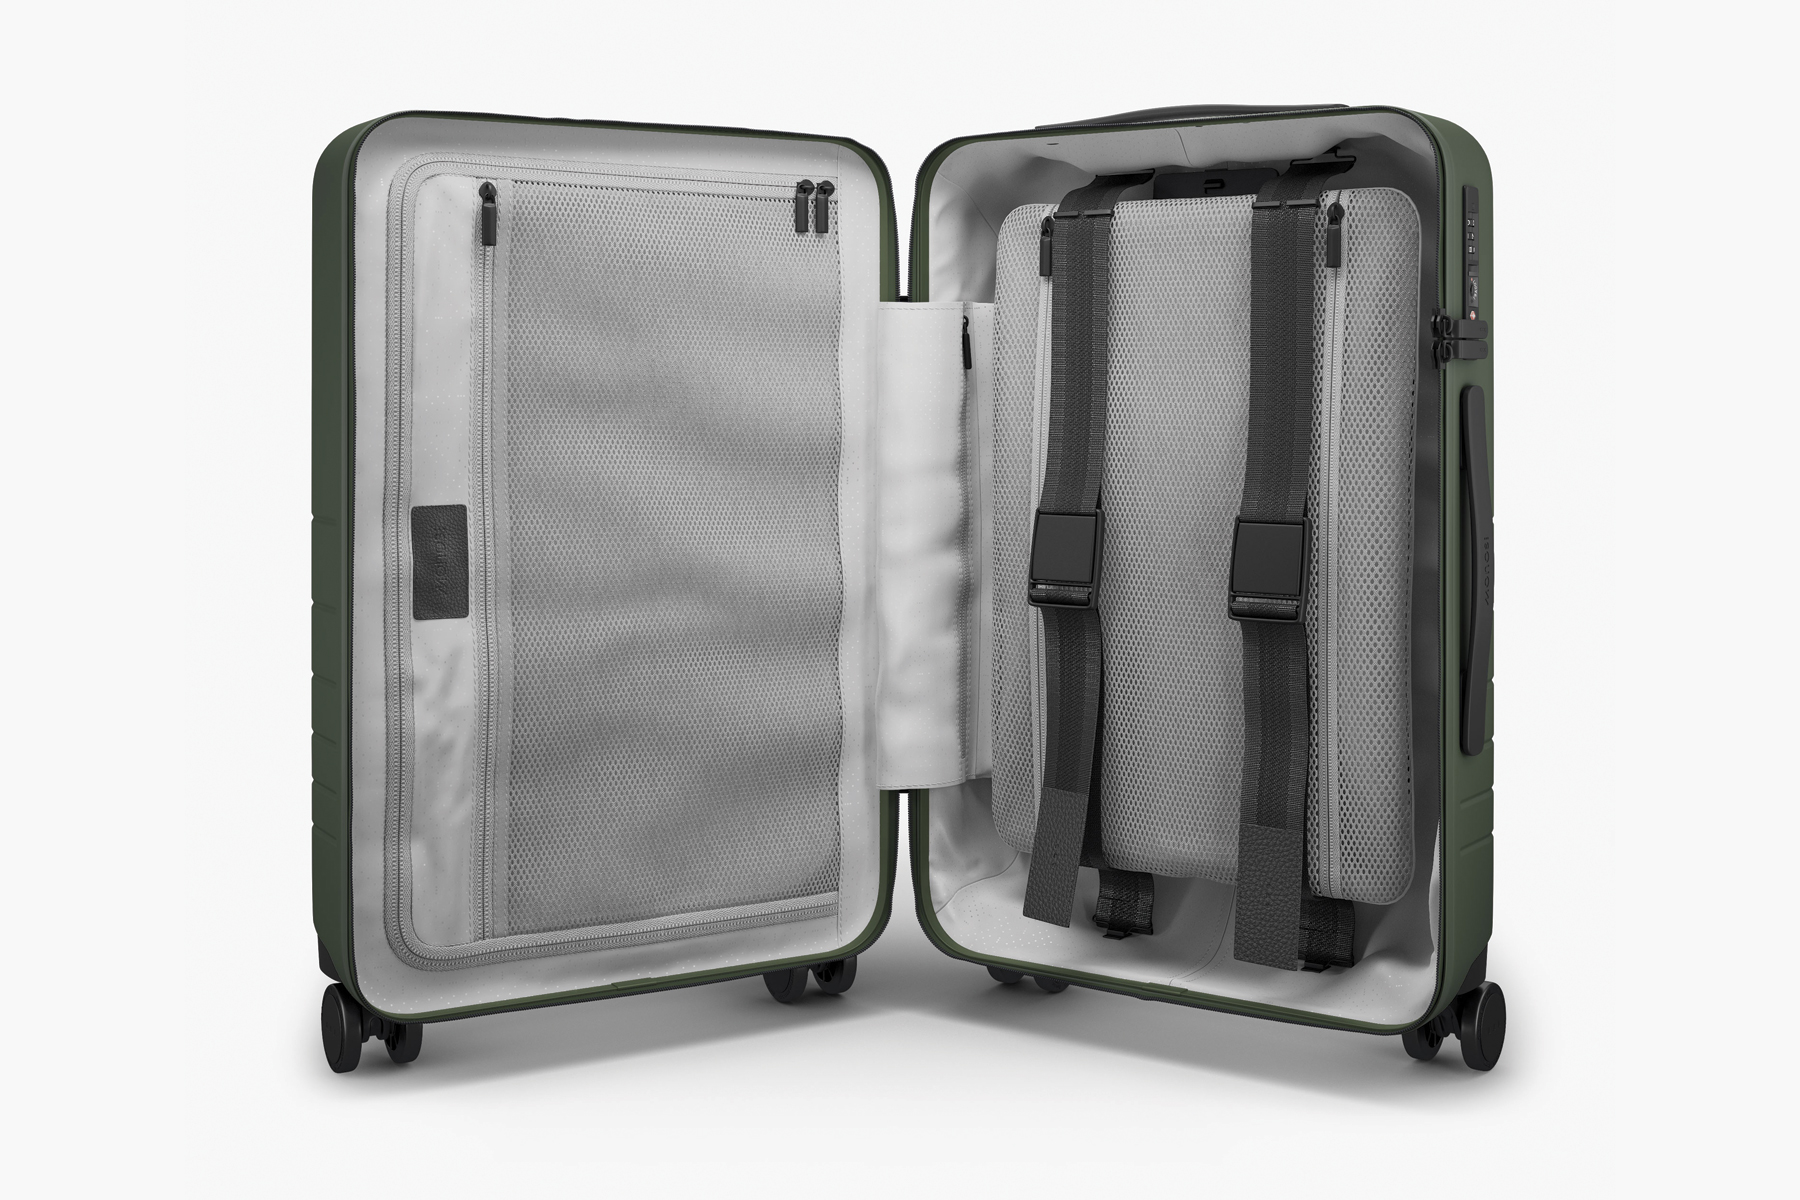 Monos Carry On Pro Hardside suitcase interior